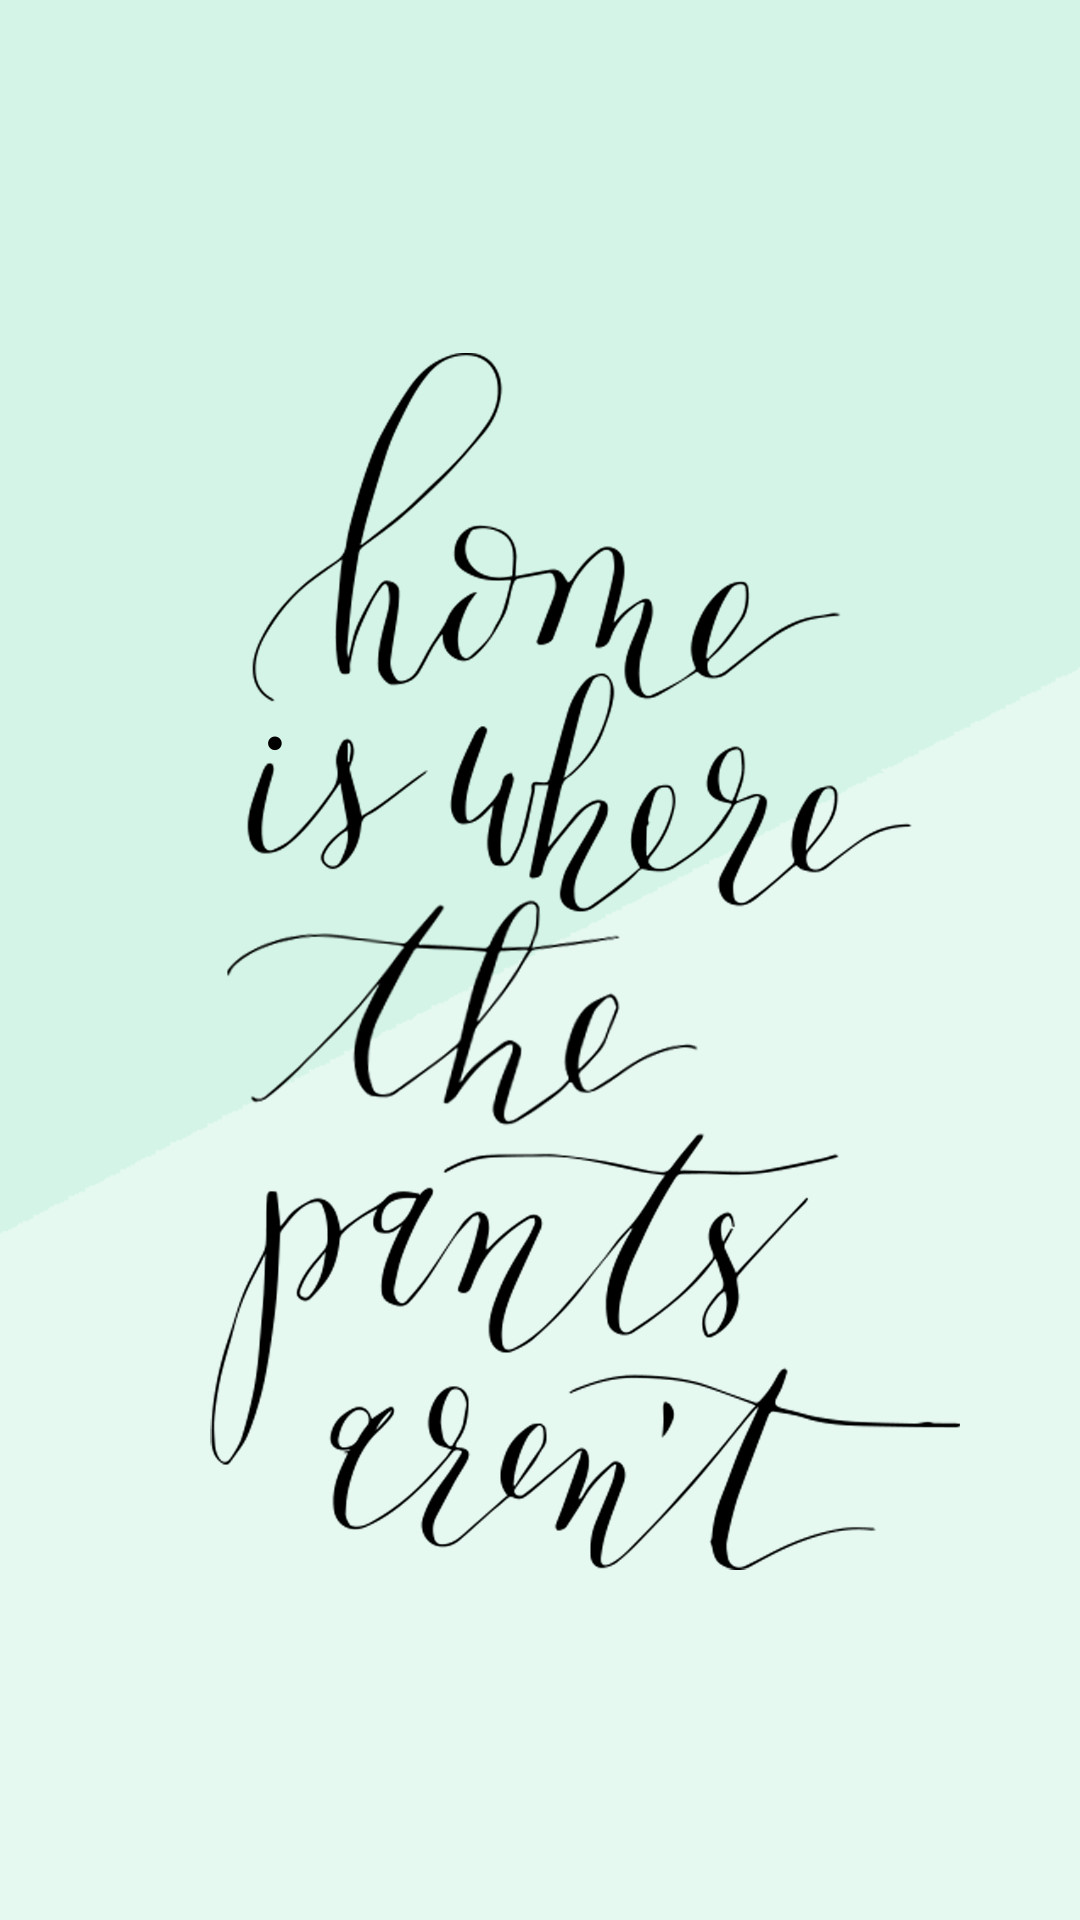 Free Download Wallpapers Of Friendship Quotes Phone Wallpaper Quotes 75 Images